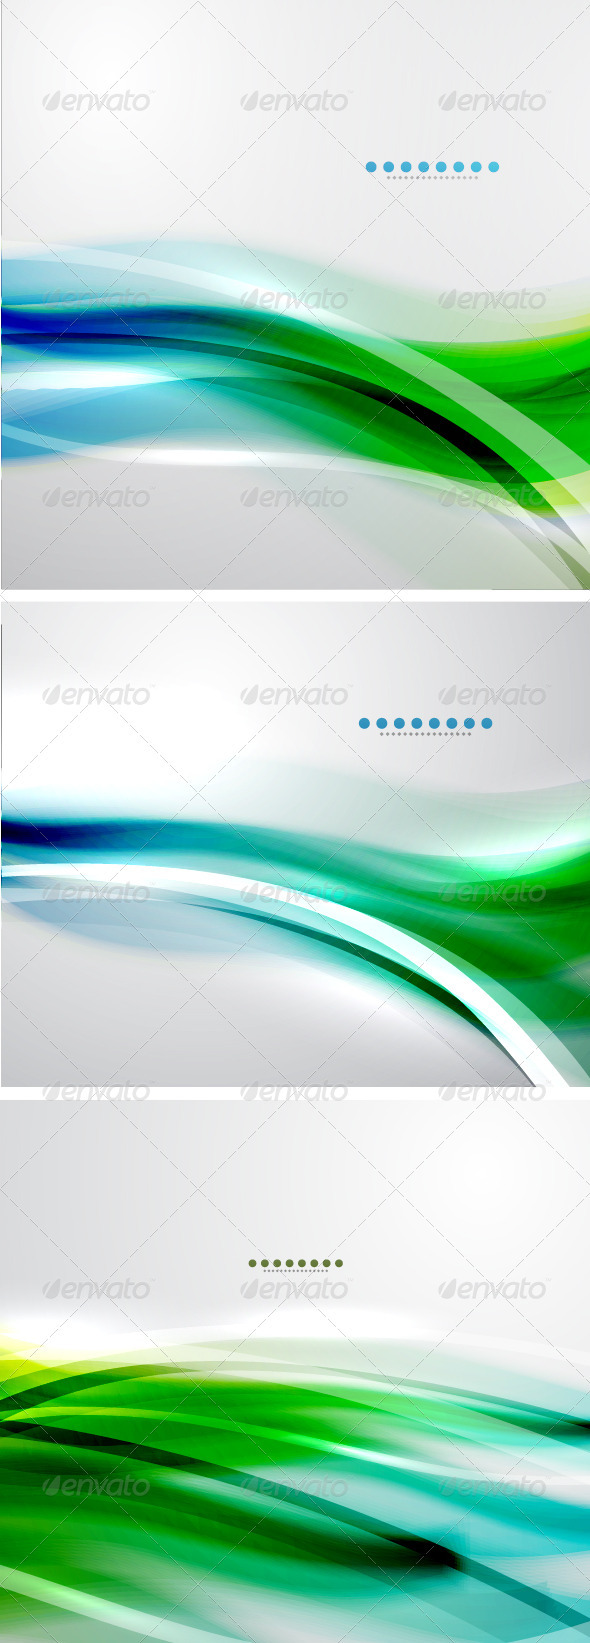 Creative Smooth Wave Backgrounds - Backgrounds Decorative